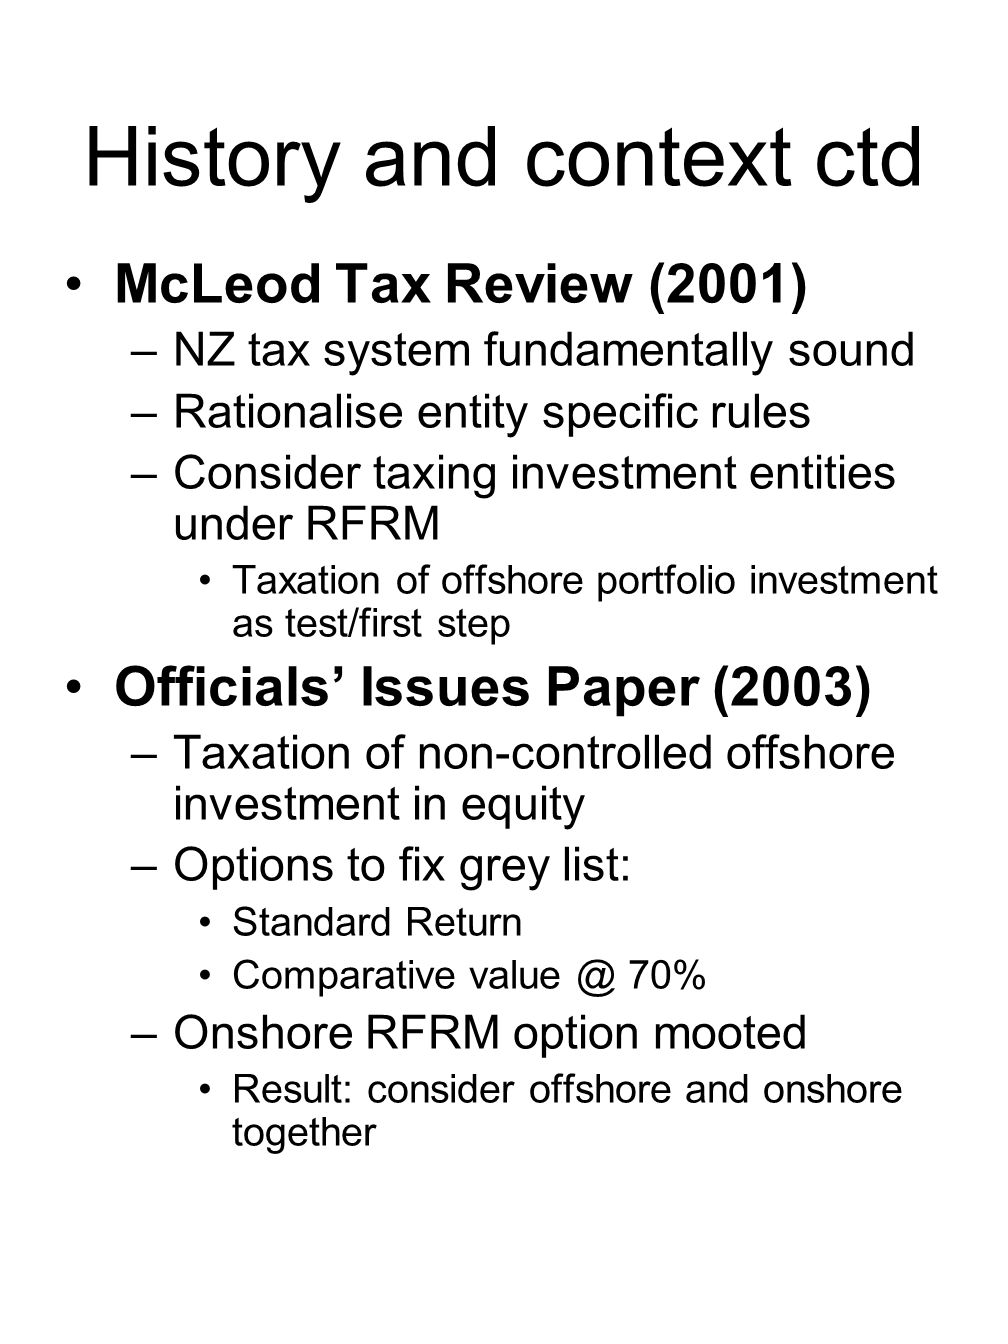 History and context ctd McLeod Tax Review (2001) –NZ tax system fundamentally sound –Rationalise entity specific rules –Consider taxing investment entities under RFRM Taxation of offshore portfolio investment as test/first step Officials' Issues Paper (2003) –Taxation of non-controlled offshore investment in equity –Options to fix grey list: Standard Return Comparative value @ 70% –Onshore RFRM option mooted Result: consider offshore and onshore together